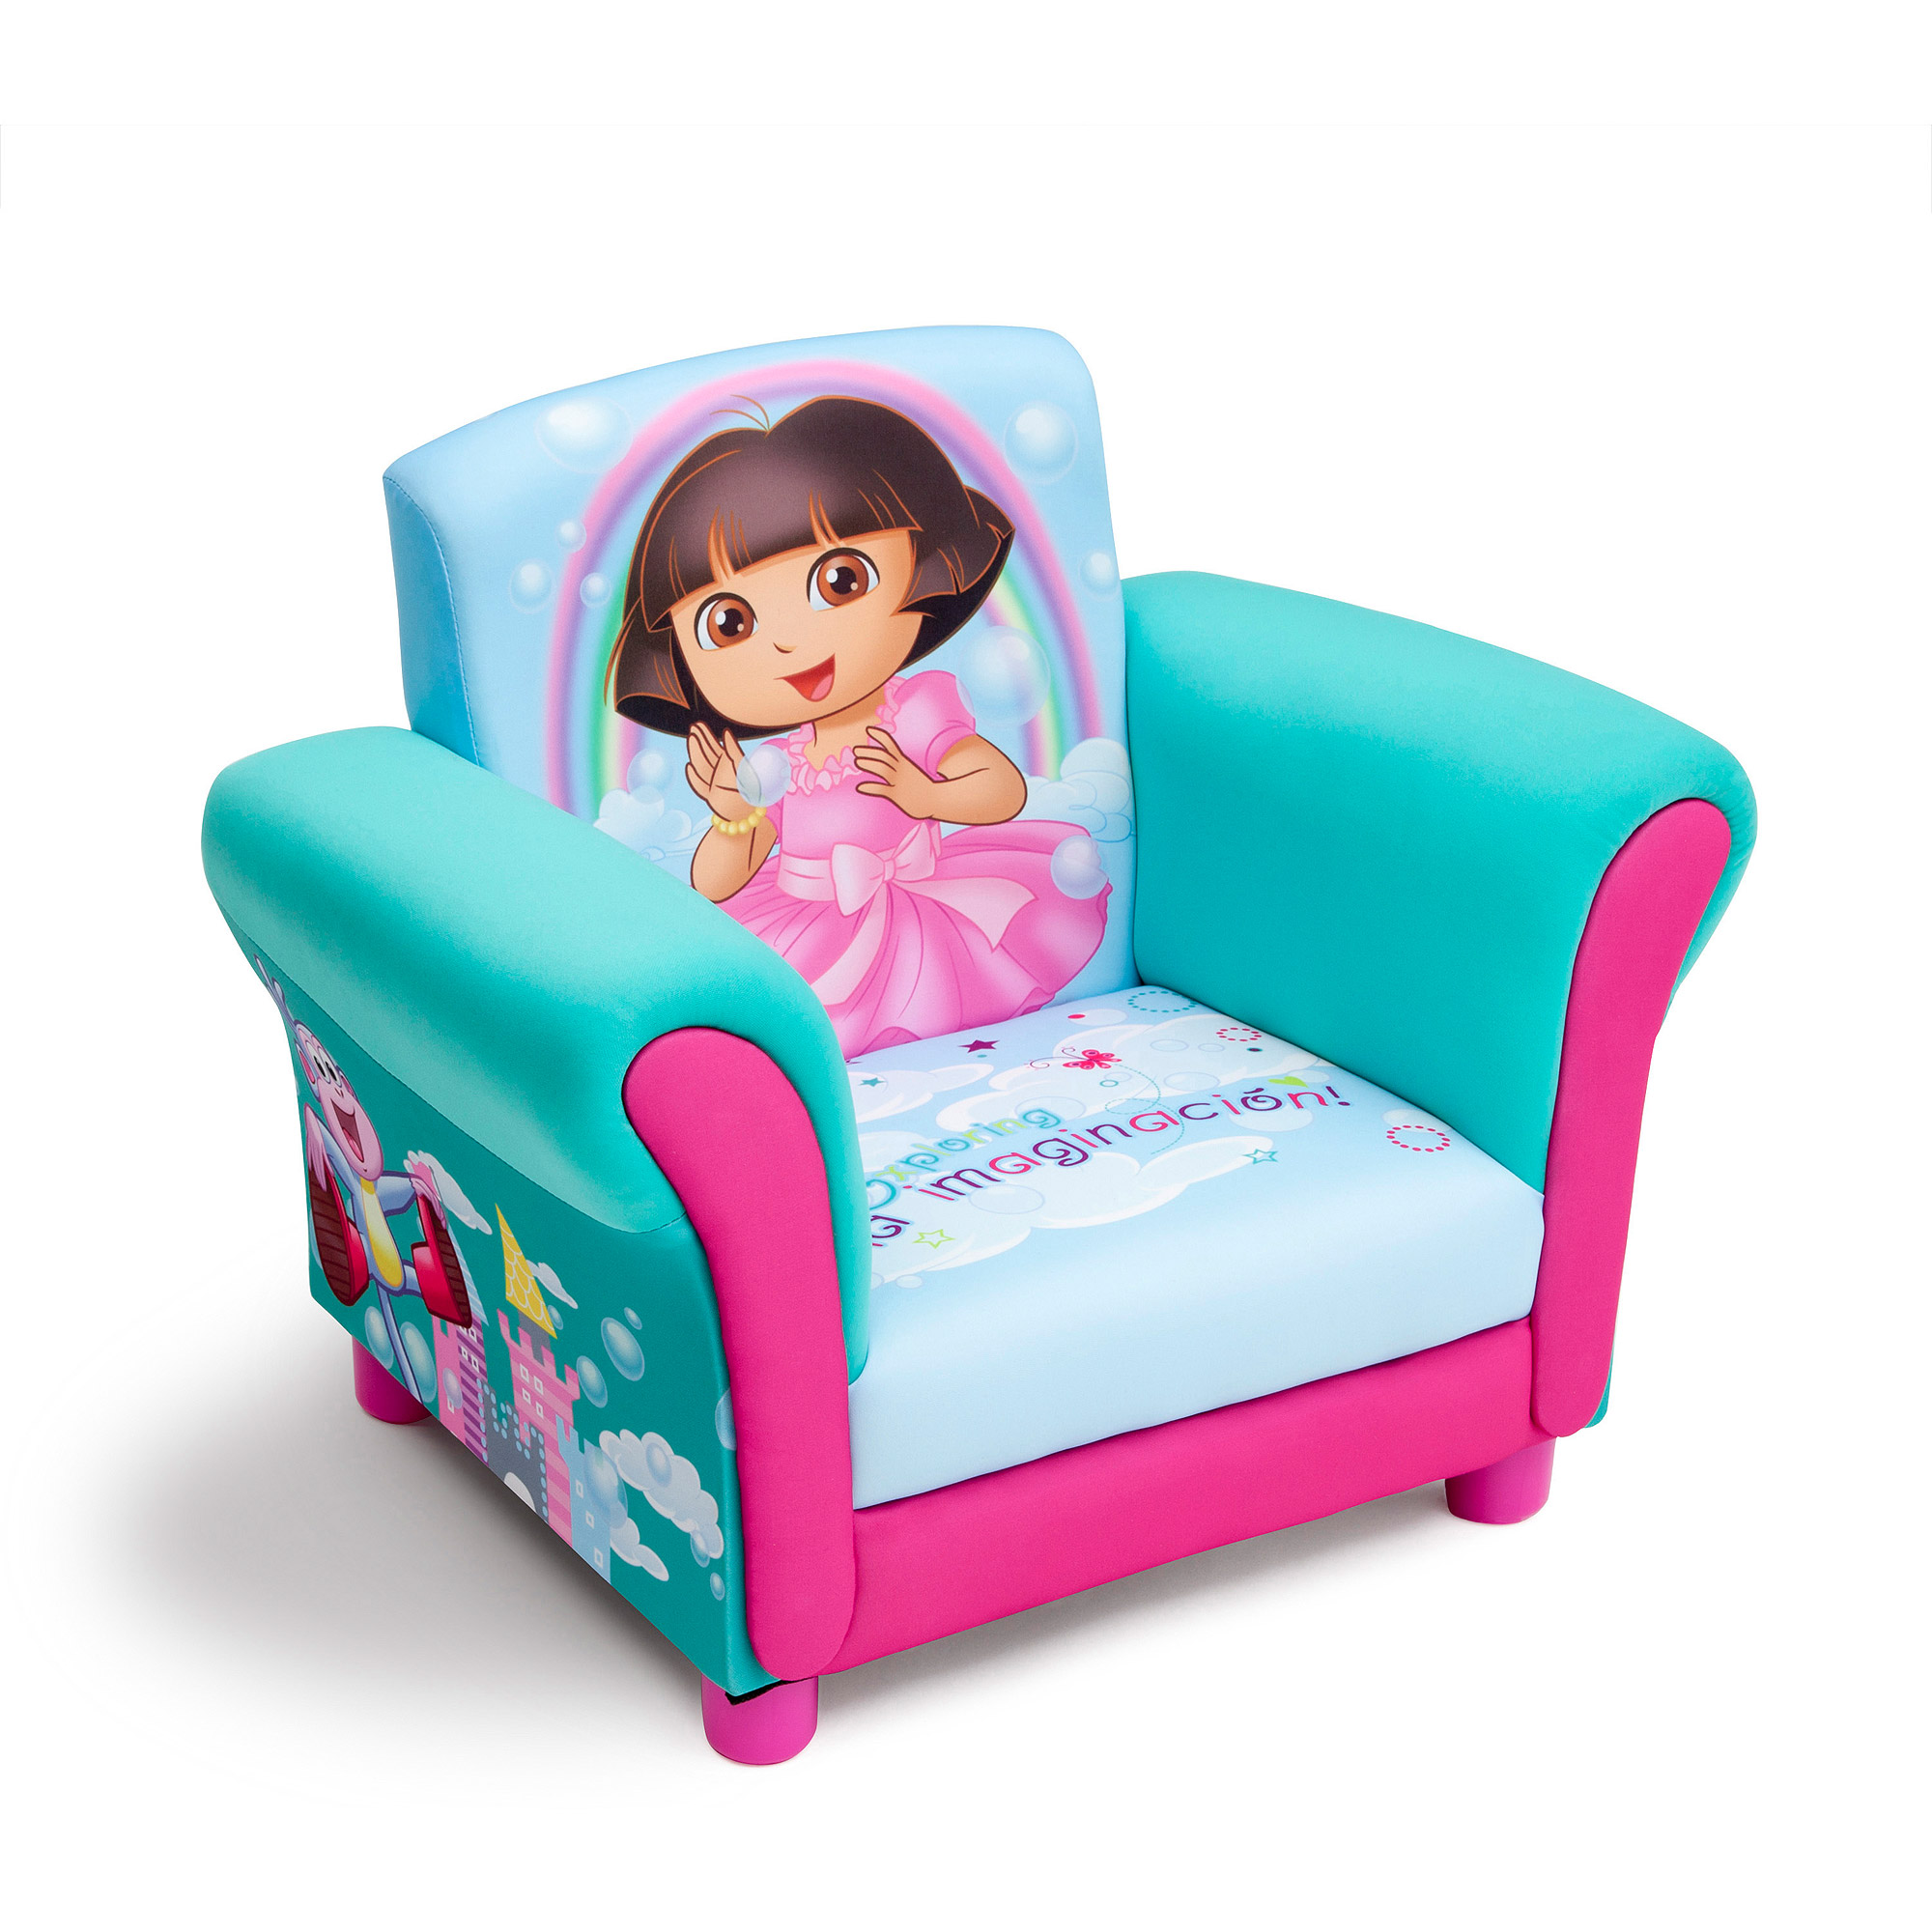 Delicieux Delta Childrenu0027s Products Nickelodeon Dora Upholstered Chair